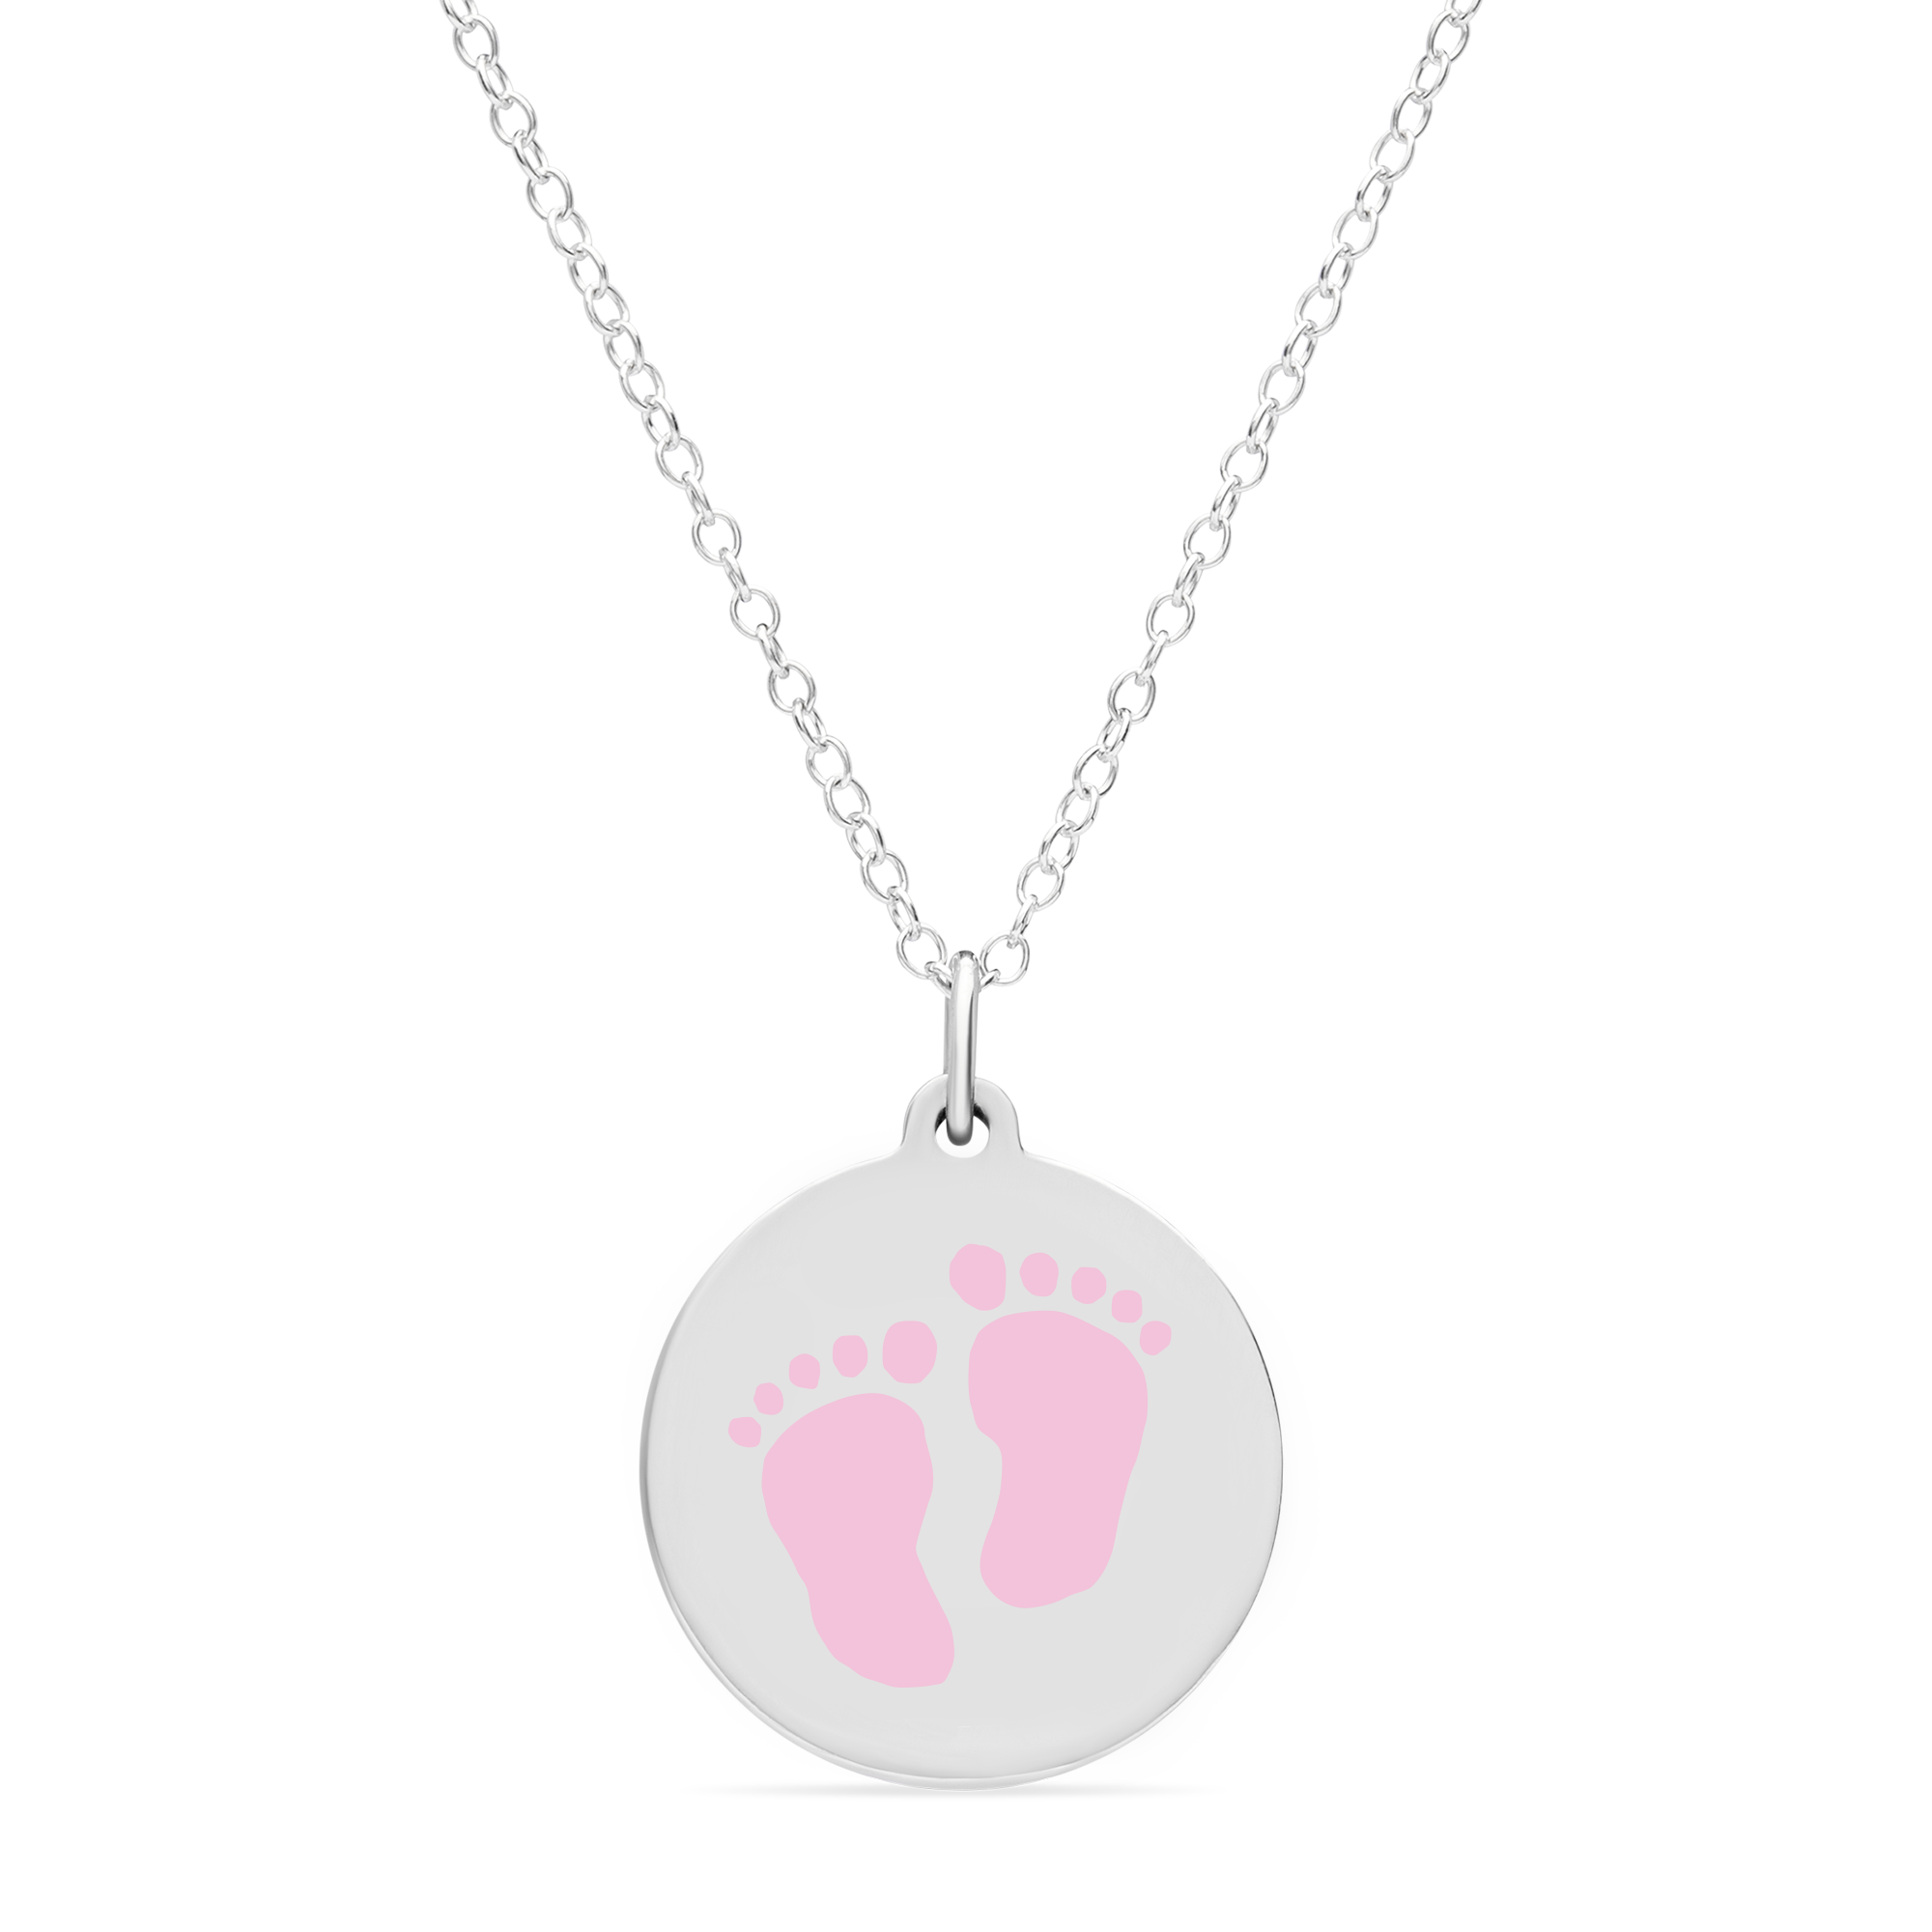 ORIGINAL BABYFEET CHARM in sterling silver with rhodium plate